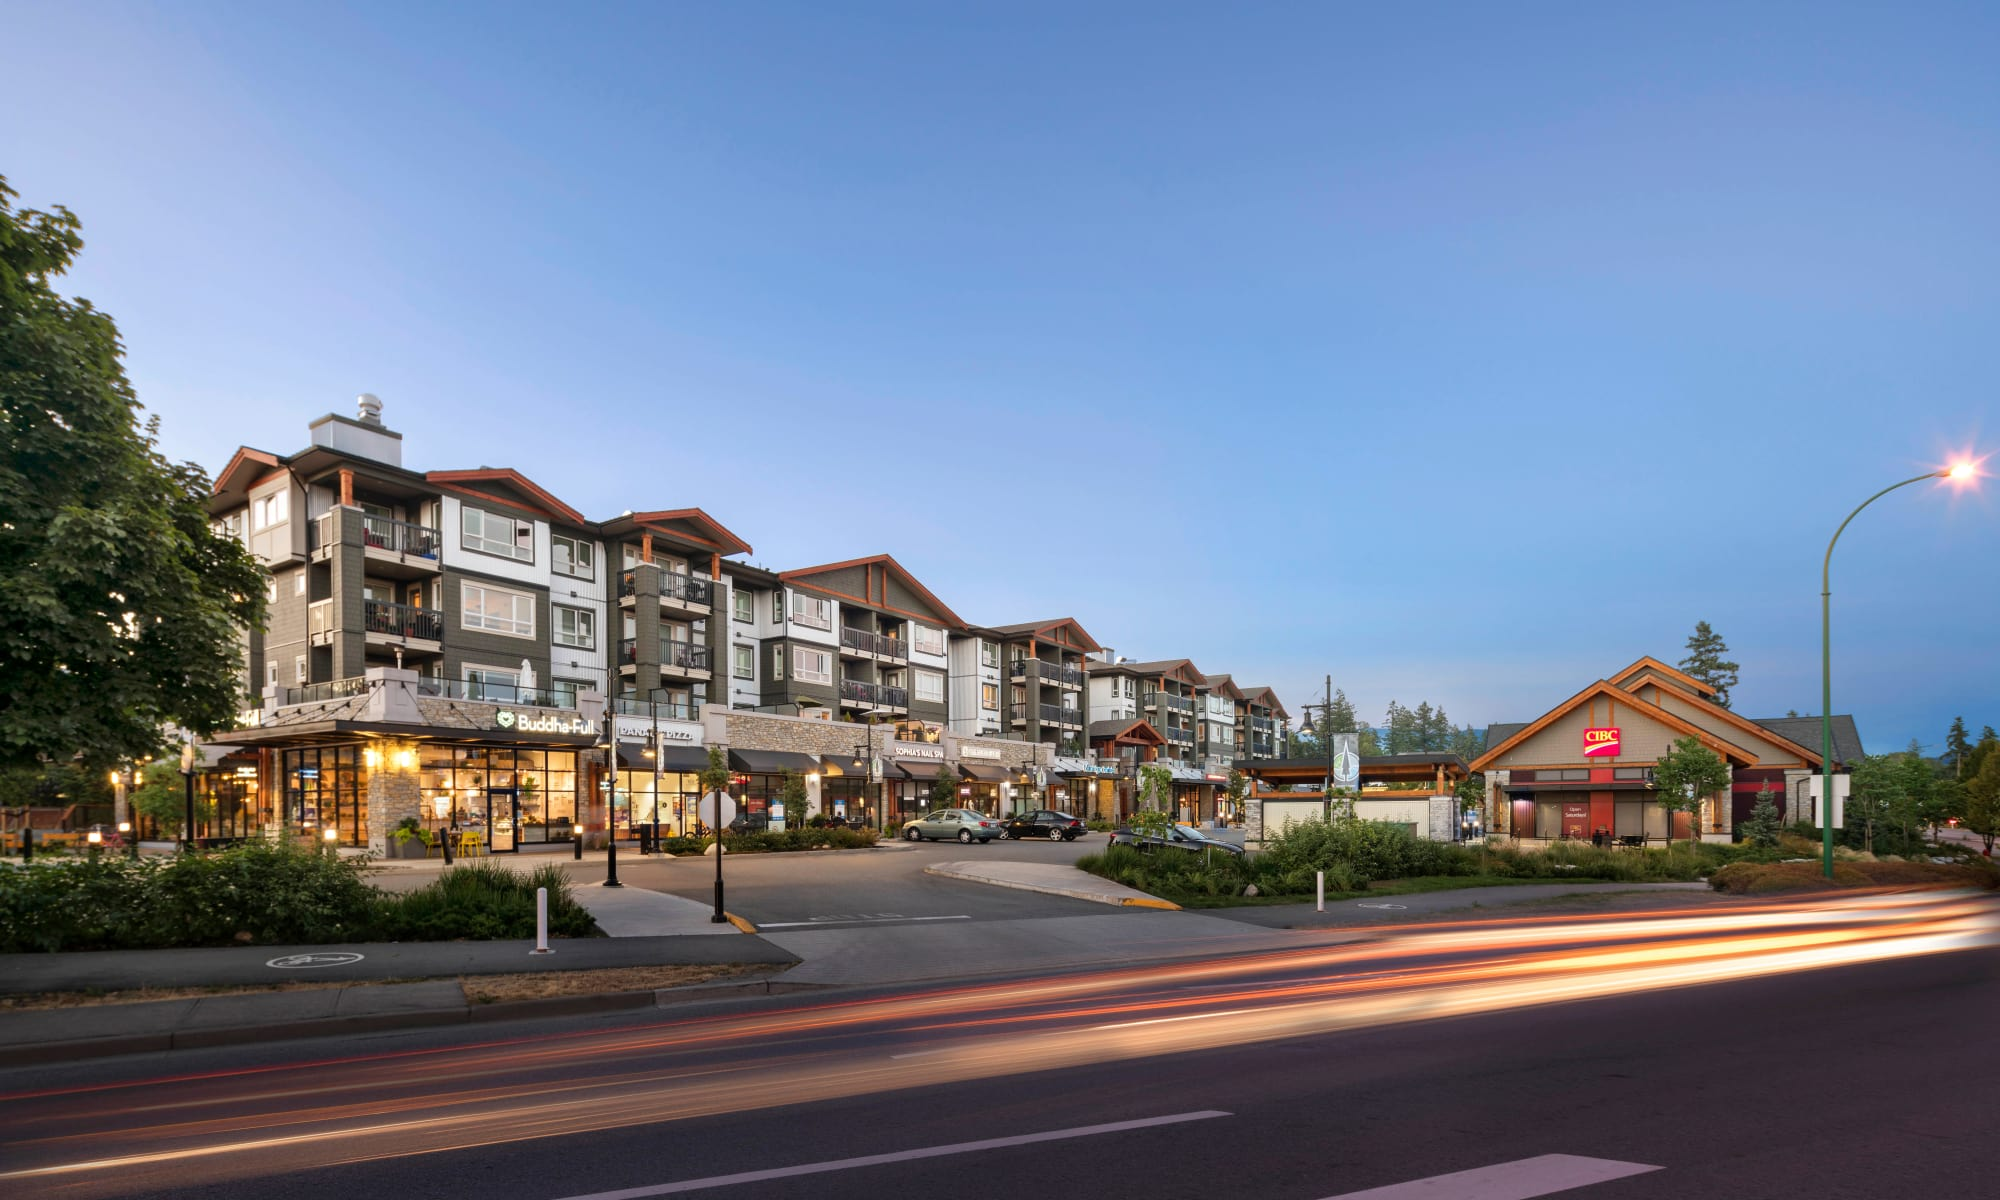 Night time exterior shot of Northwoods Village in North Vancouver